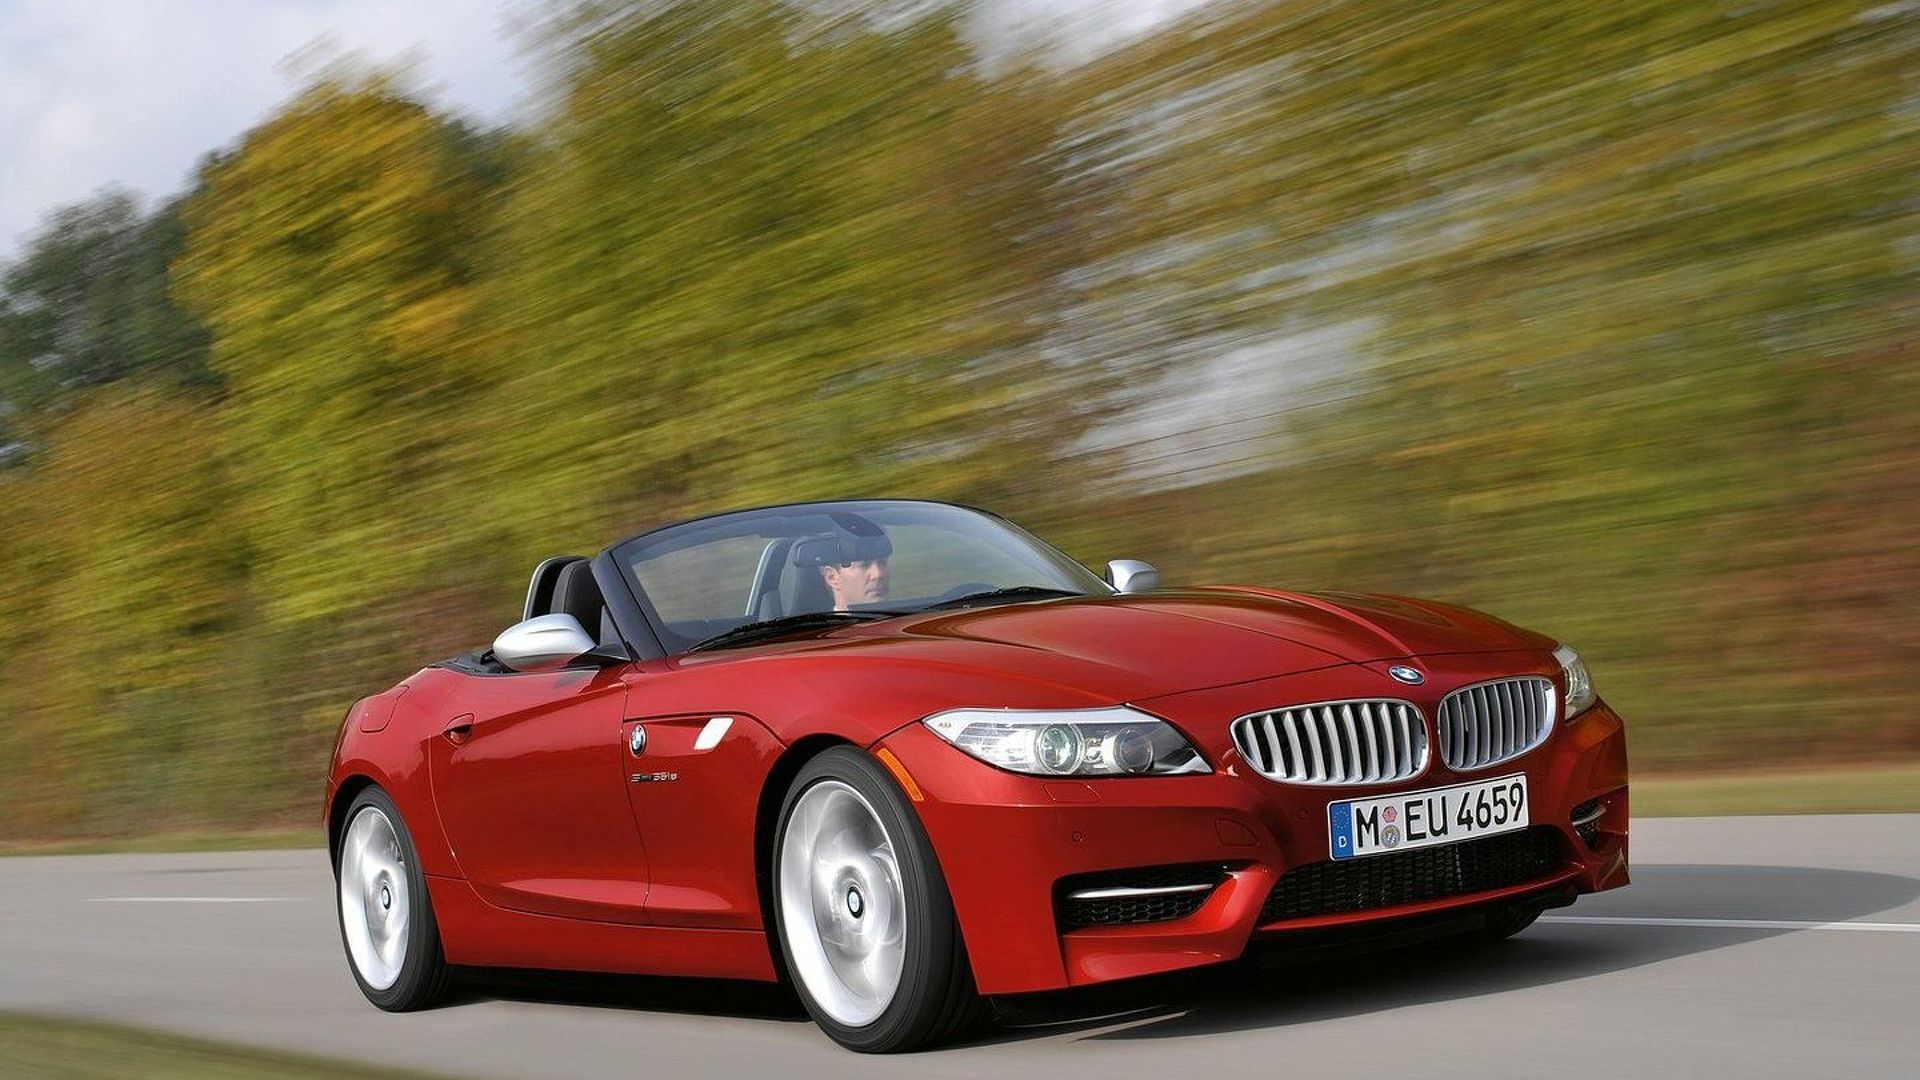 BMW working on an M Performance Z4 - report